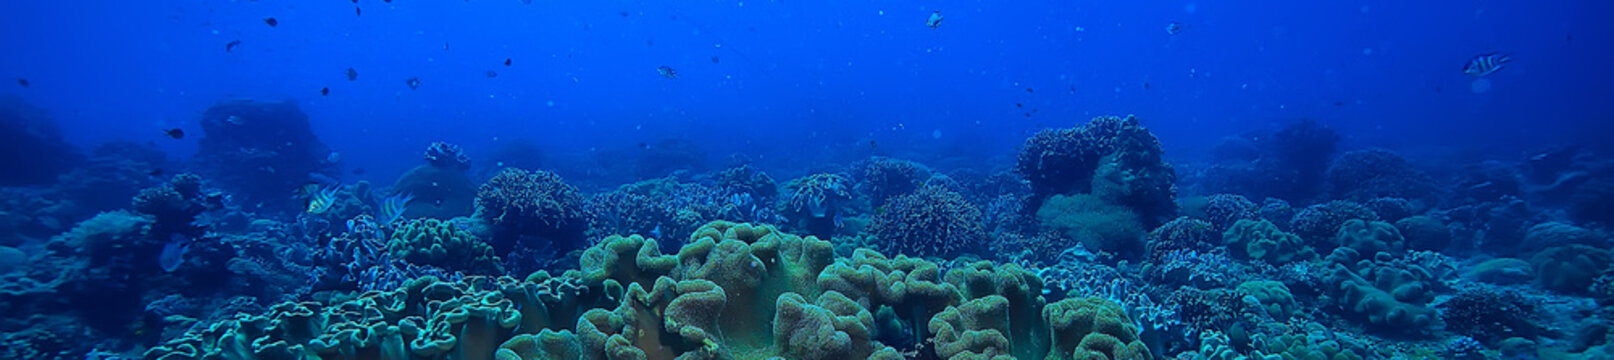 marine ecosystem underwater view / blue ocean wild nature in the sea, abstract background